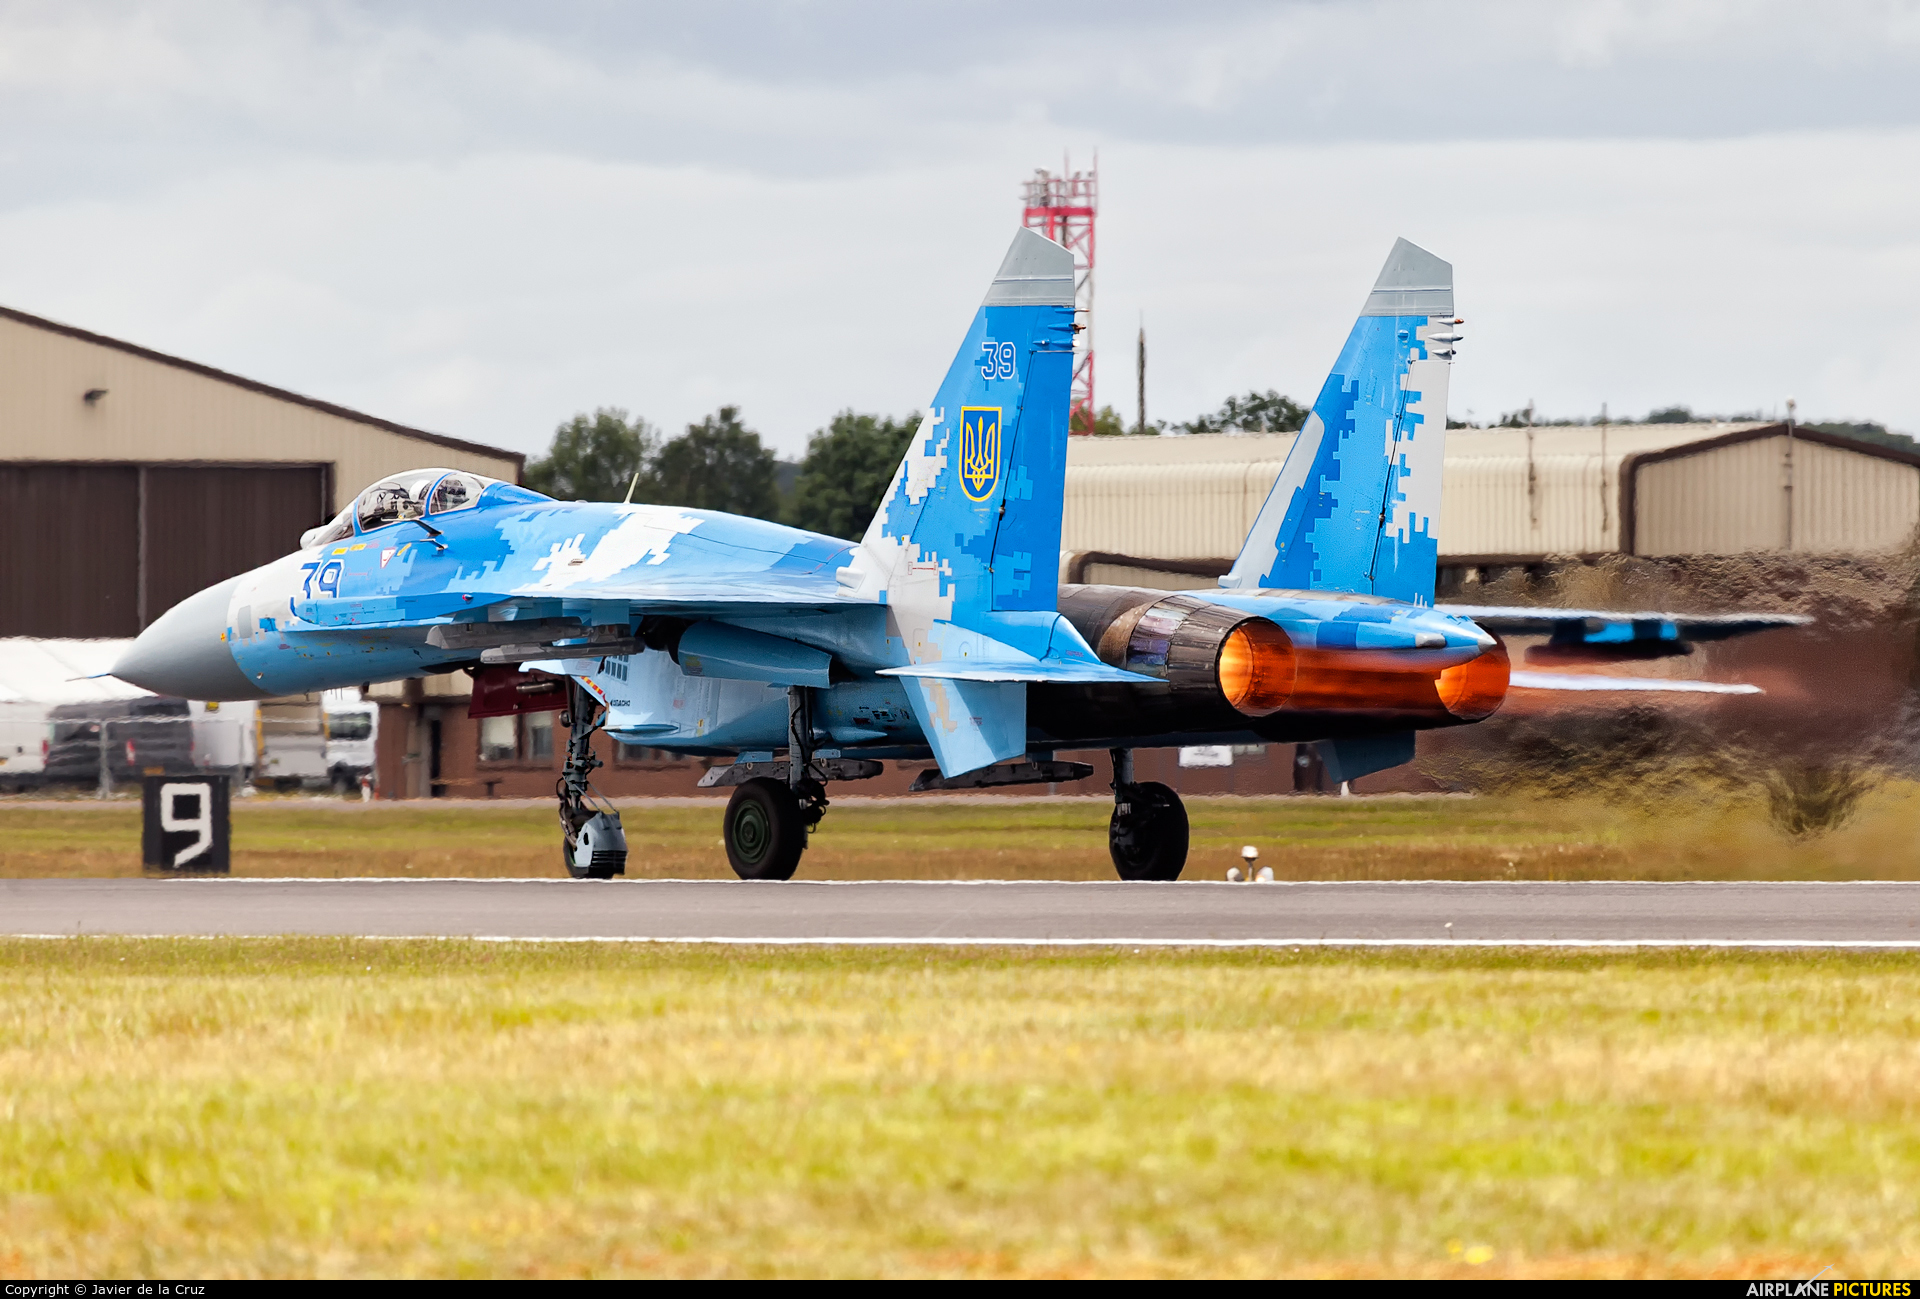 Ukraine - Air Force 39 aircraft at Fairford